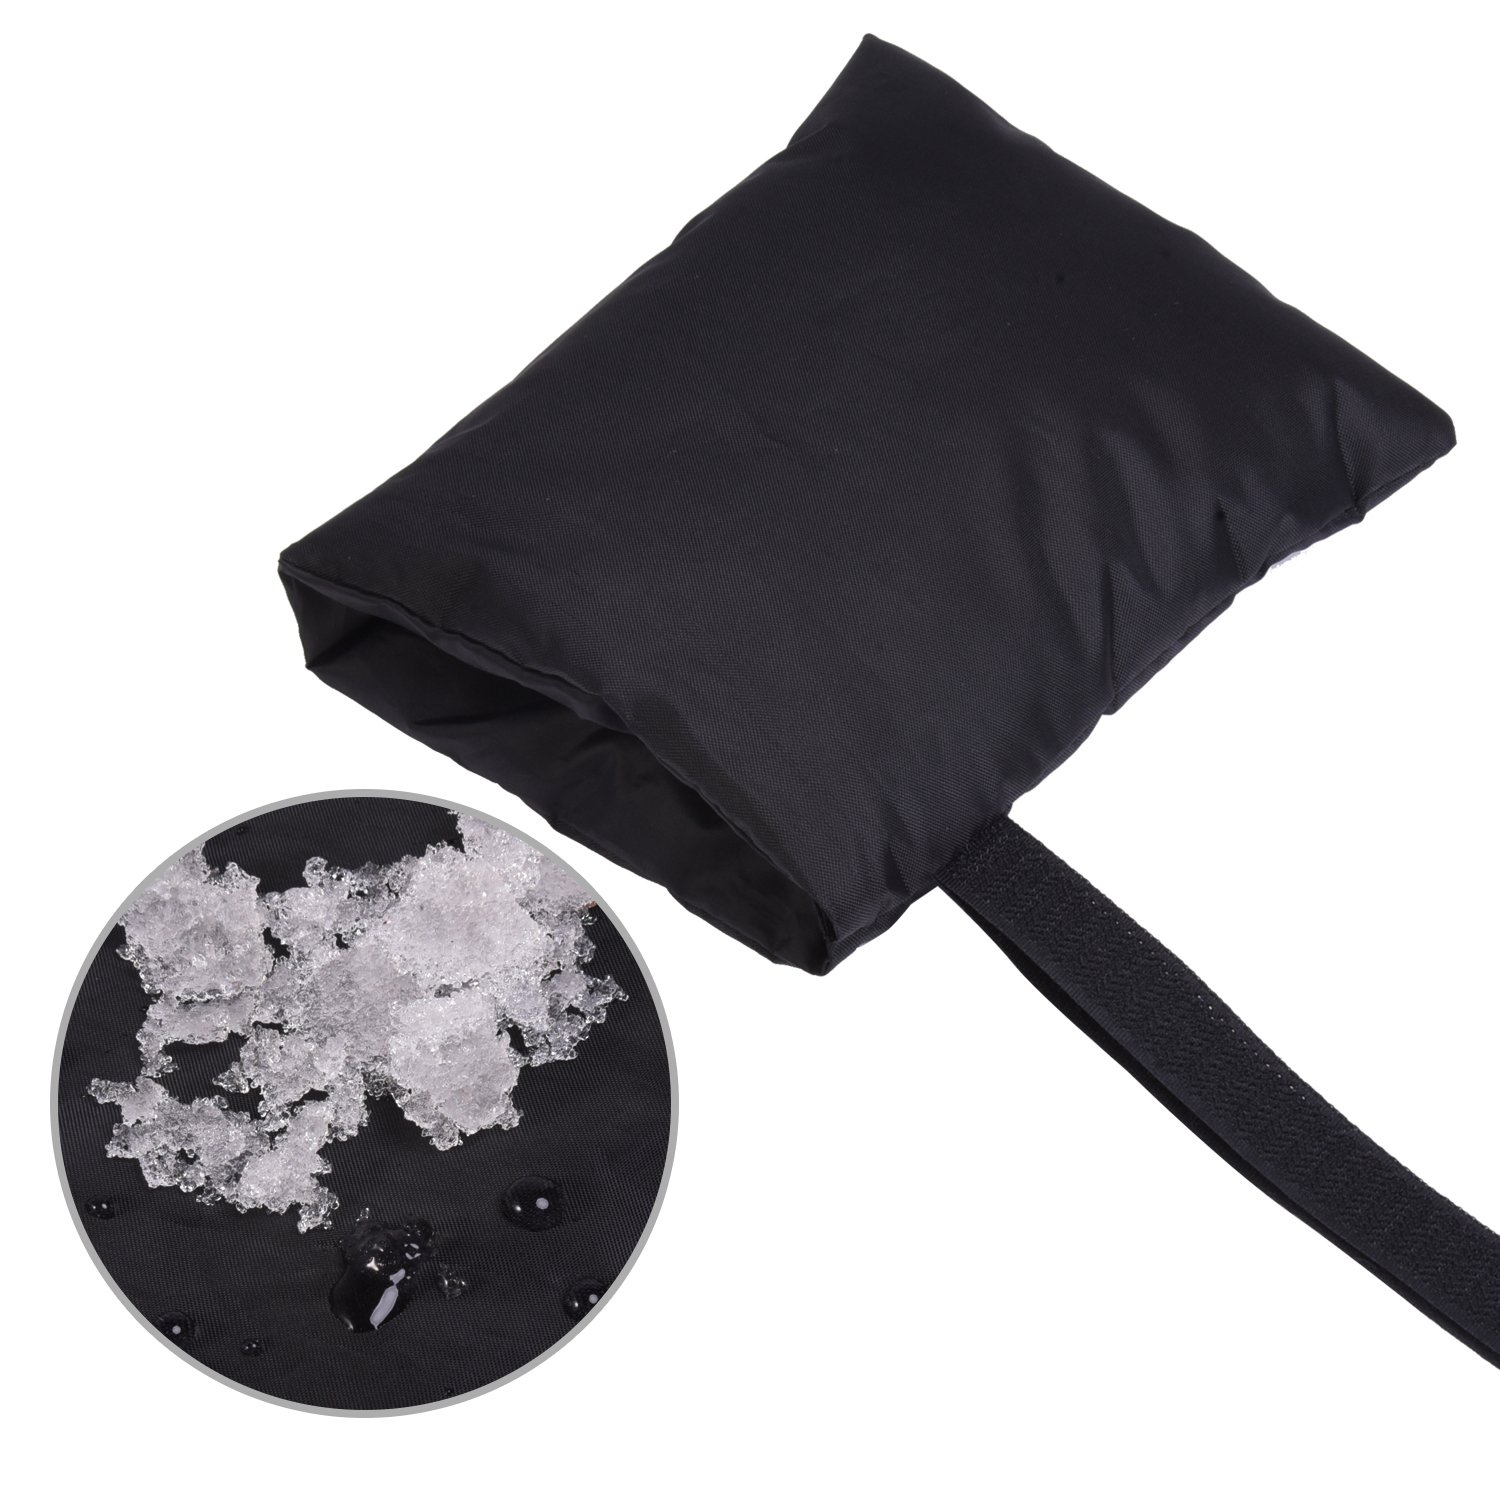 Amazon.com : Outus Outdoor Faucet Cover Socks for Freeze Protection ...